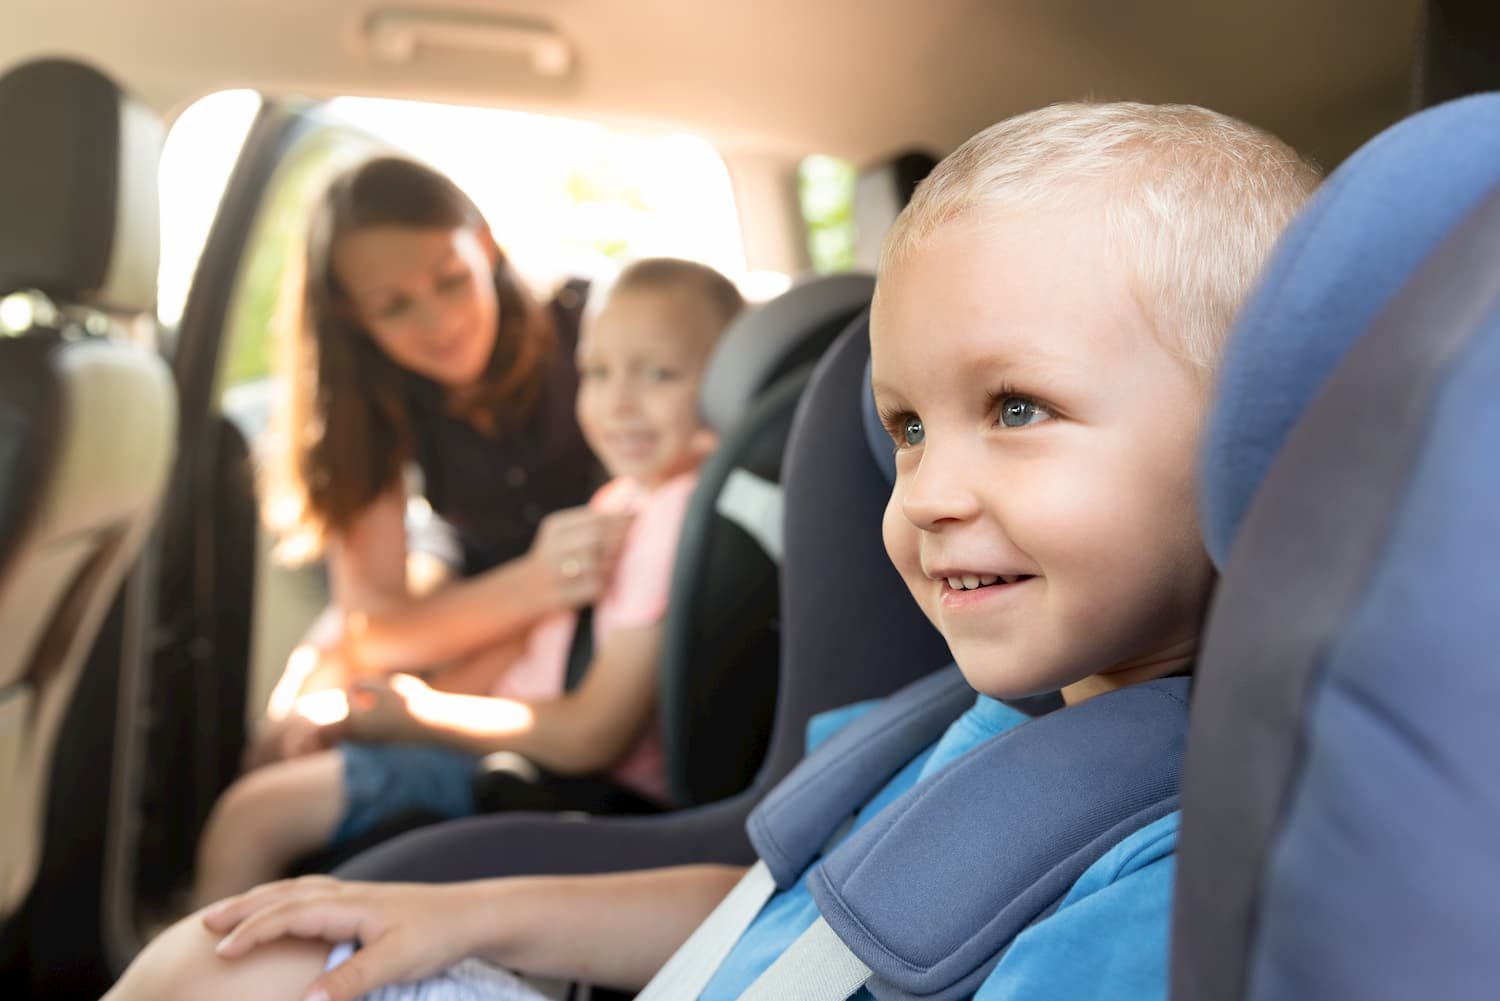 Childrens sitting in convertible car seat